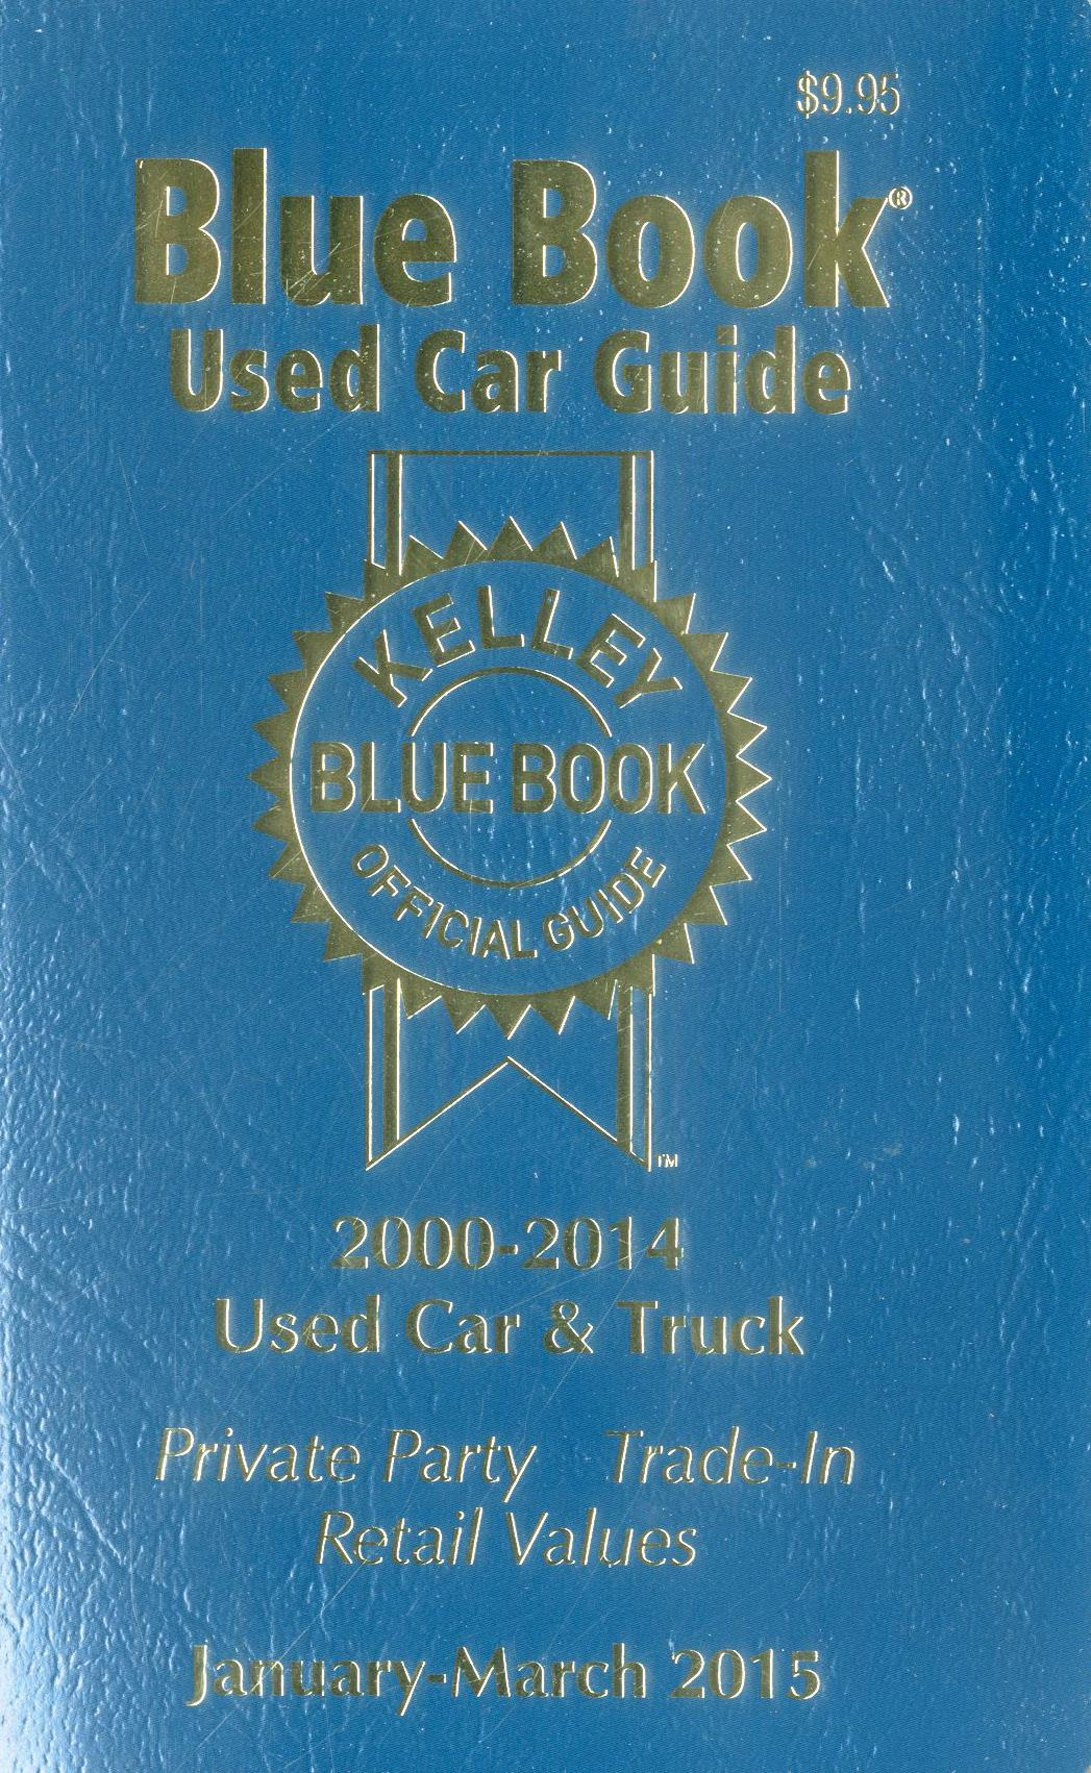 kelley blue book used car guide january march 2015 kelley blue book used car guide consumer edition kelley blue book books